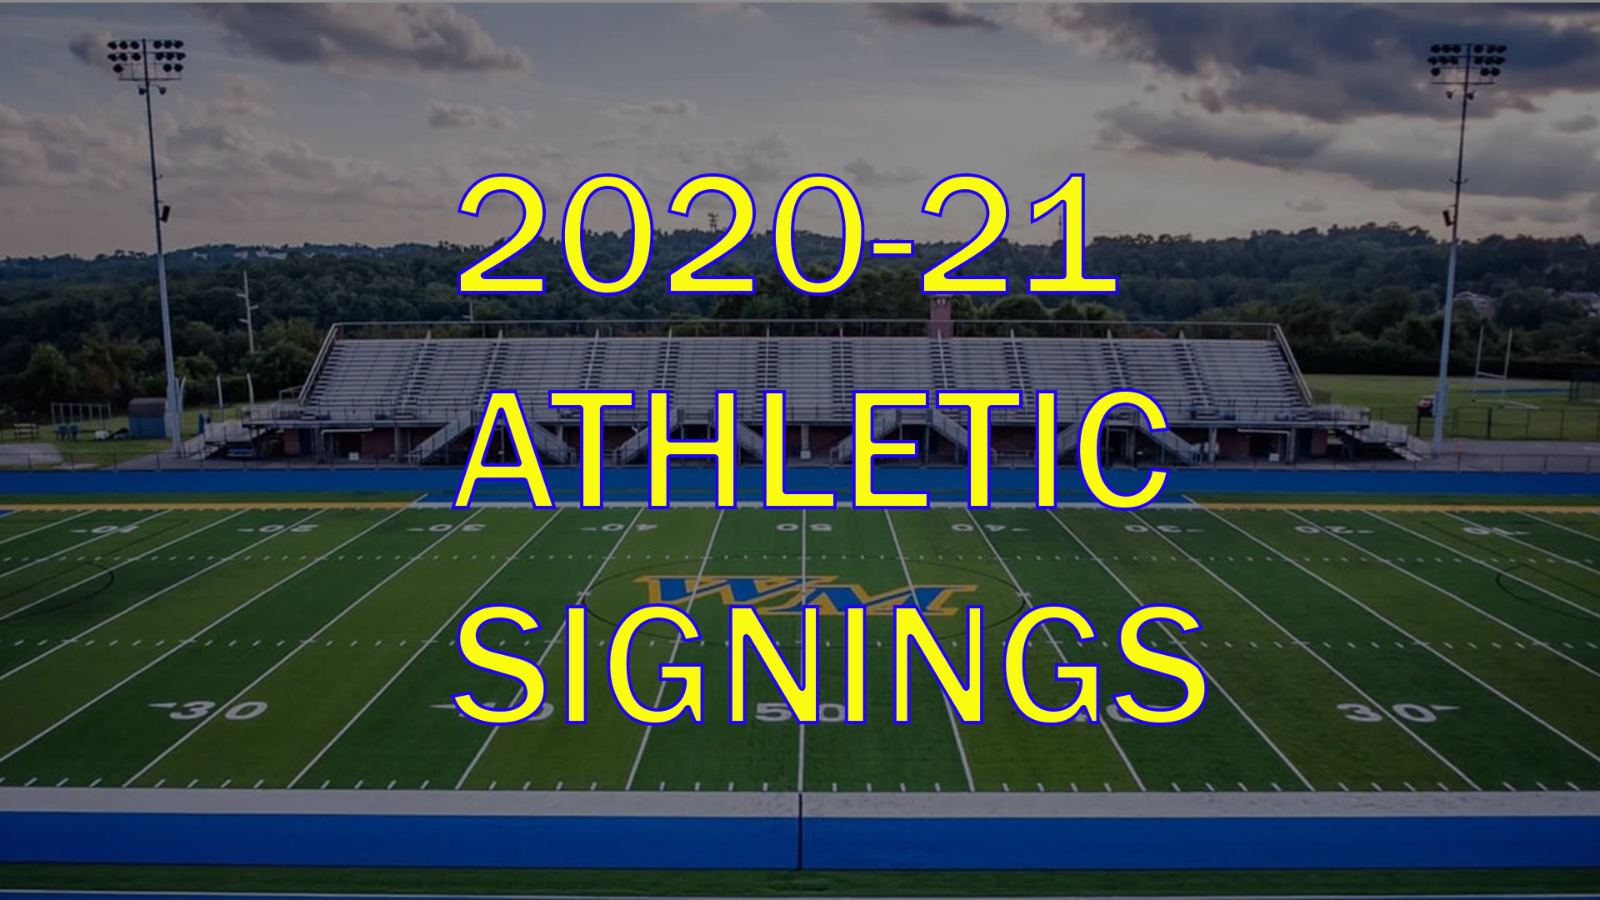 Class of 2021 Athletics Signings As of 2/20